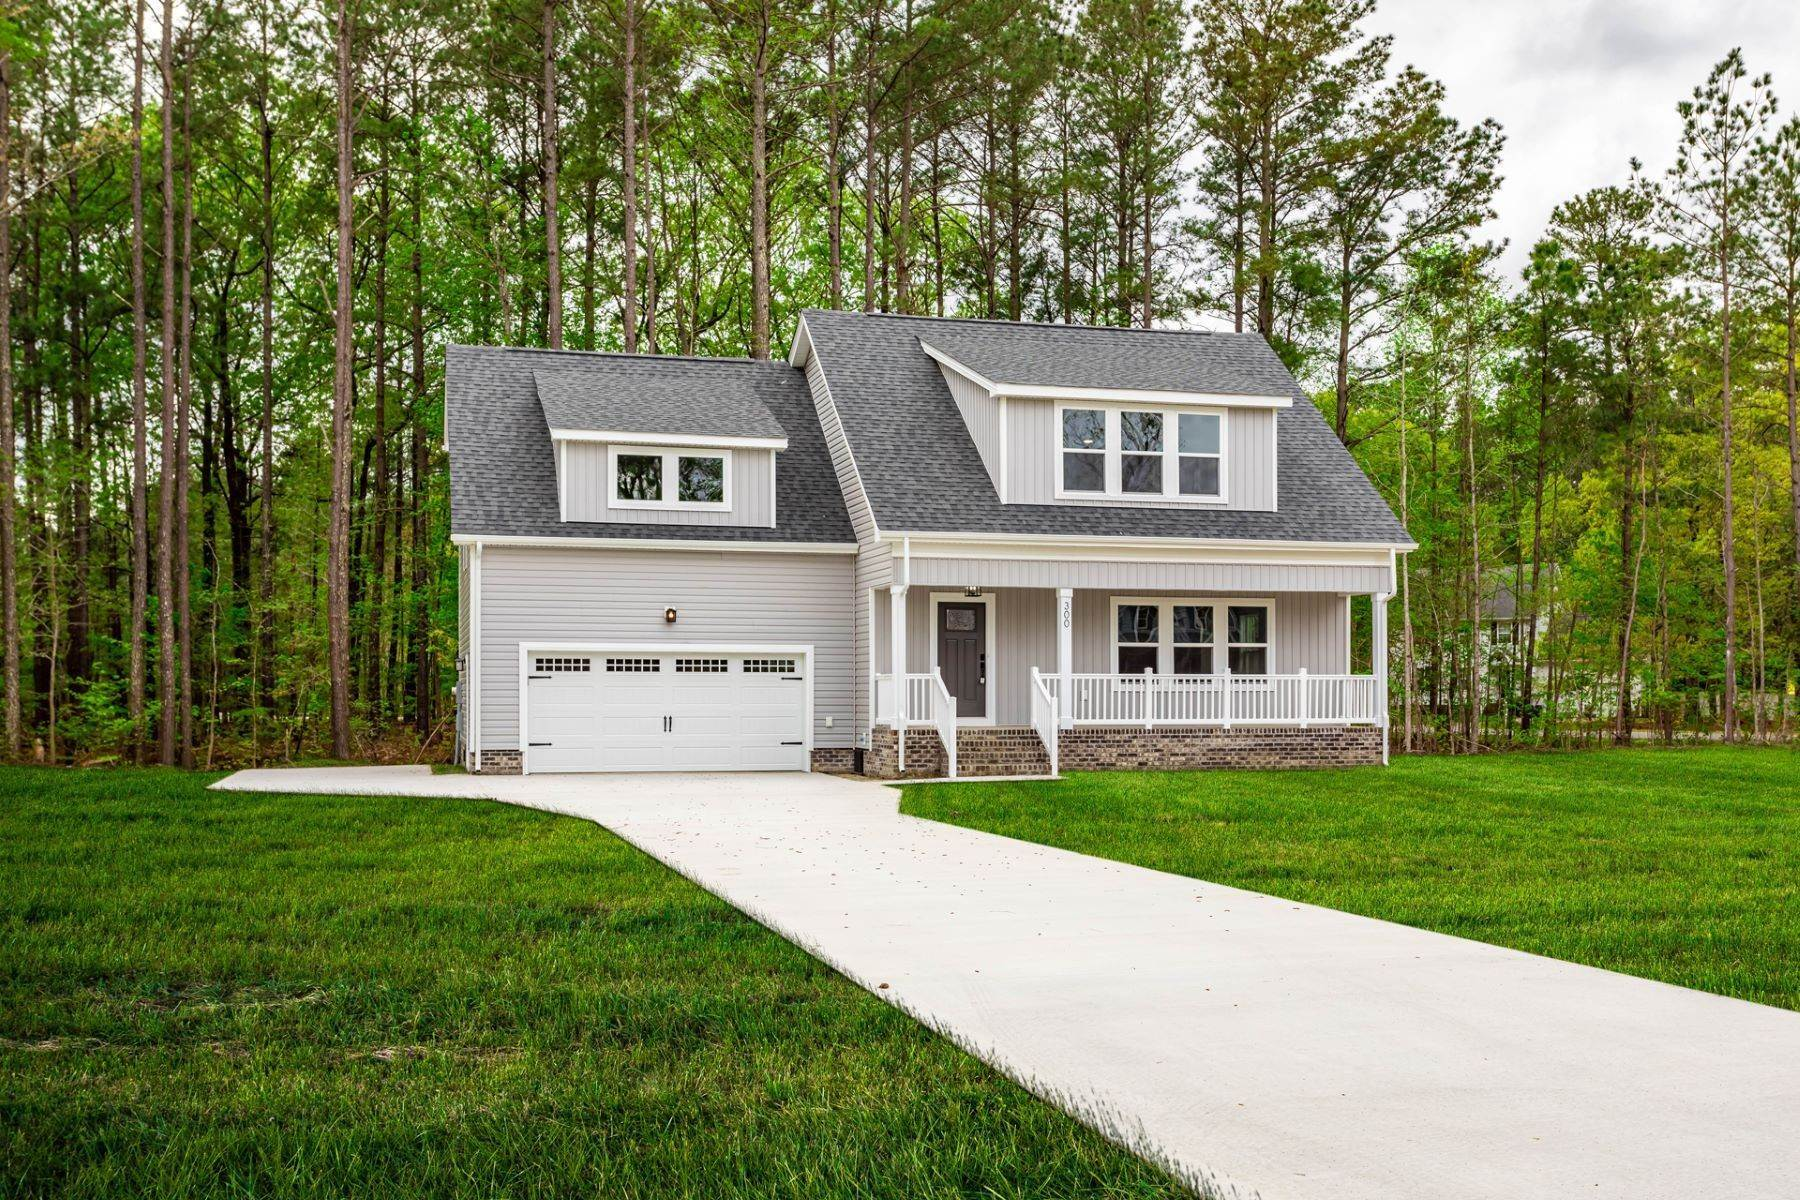 Single Family Homes for Sale at SAWYERS CREEK LANDING 112 Juniper Drive Camden, North Carolina 27921 United States